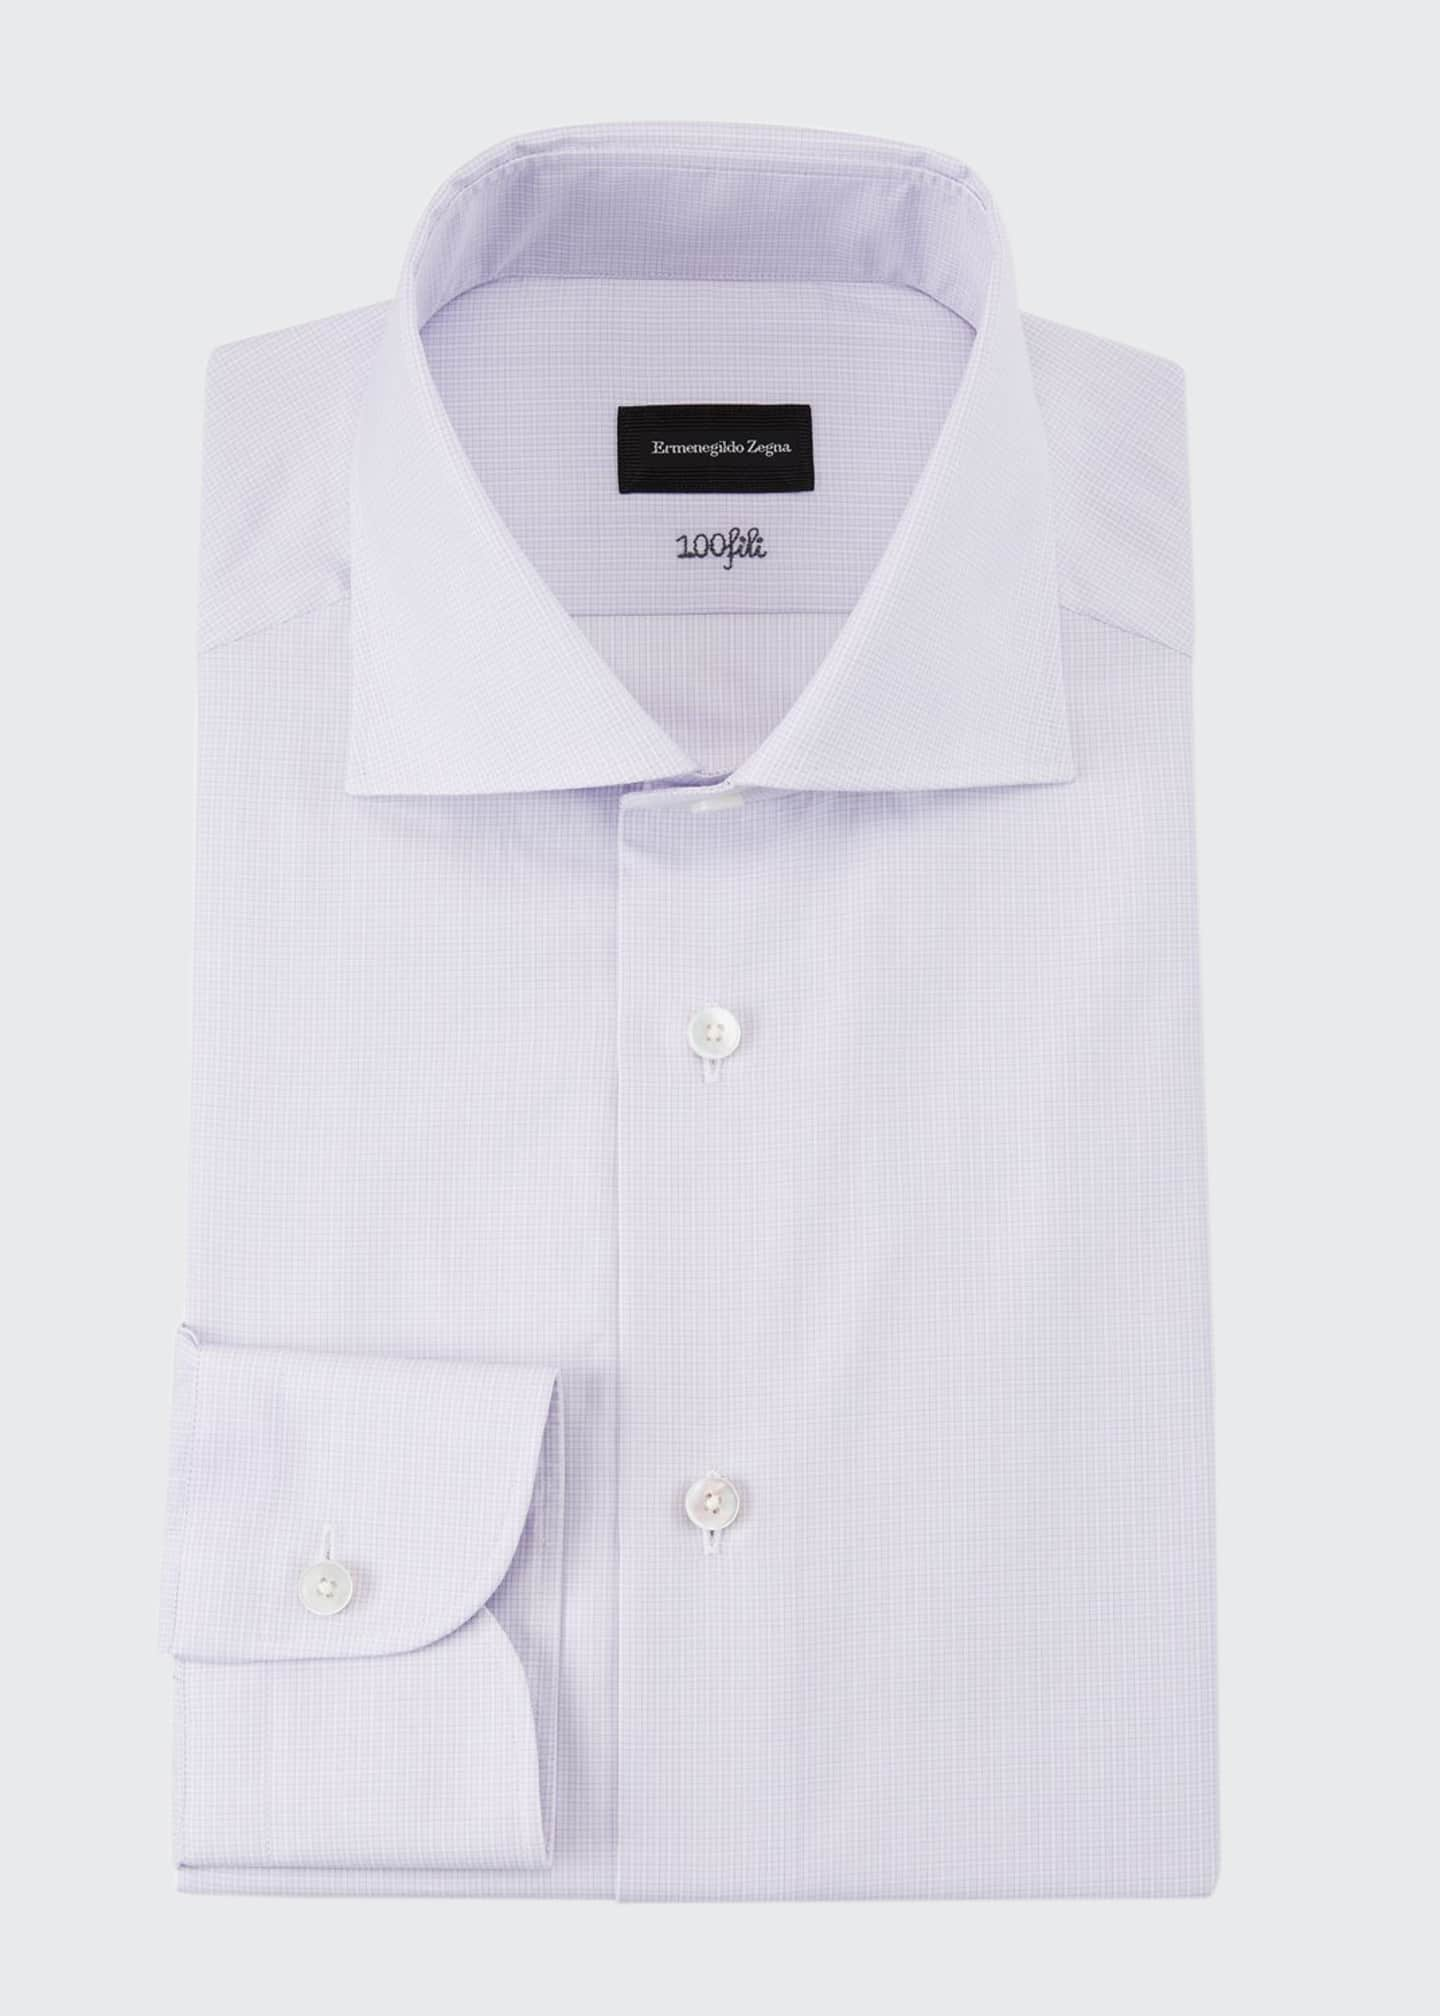 Ermenegildo Zegna Men's 100fili Textured Solid Dress Shirt